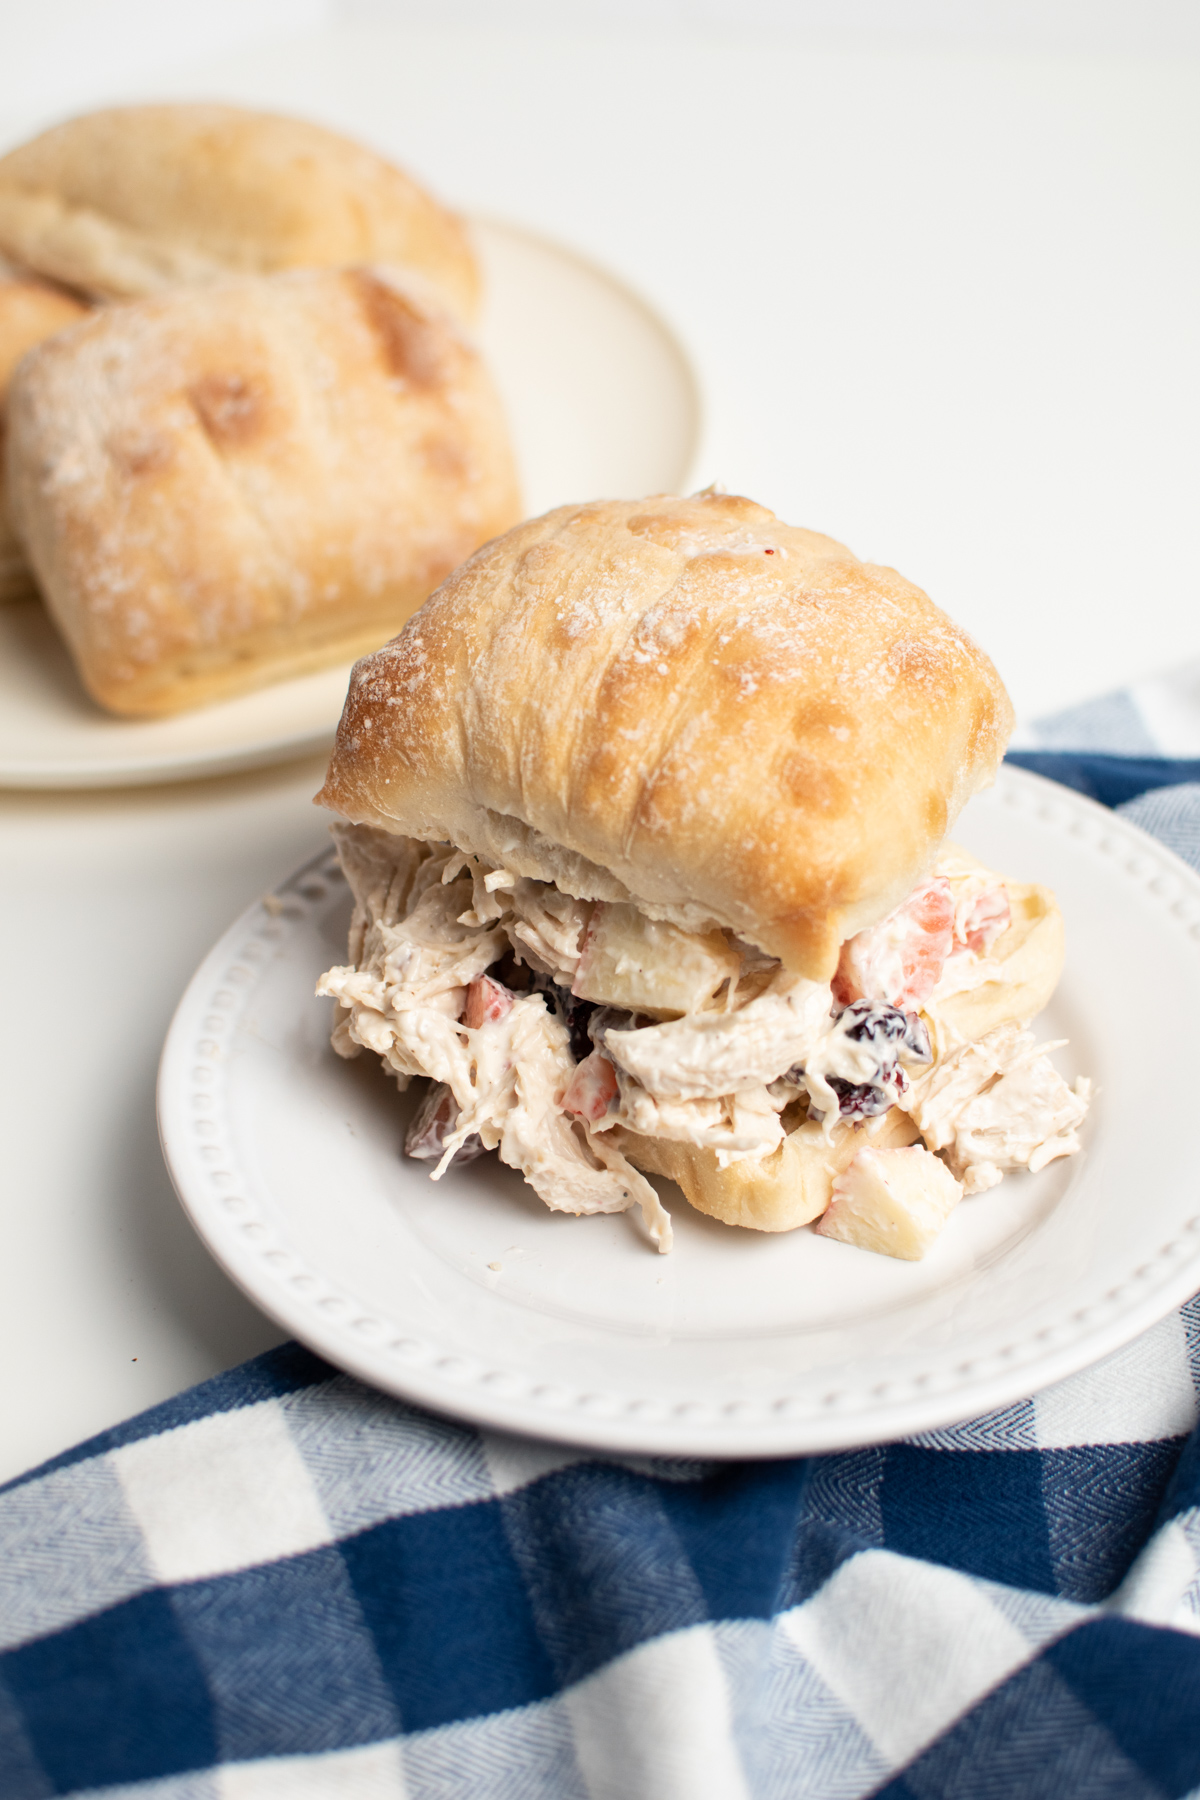 Chicken salad with apples, strawberries, and grapes on ciabatta roll on a white plate.